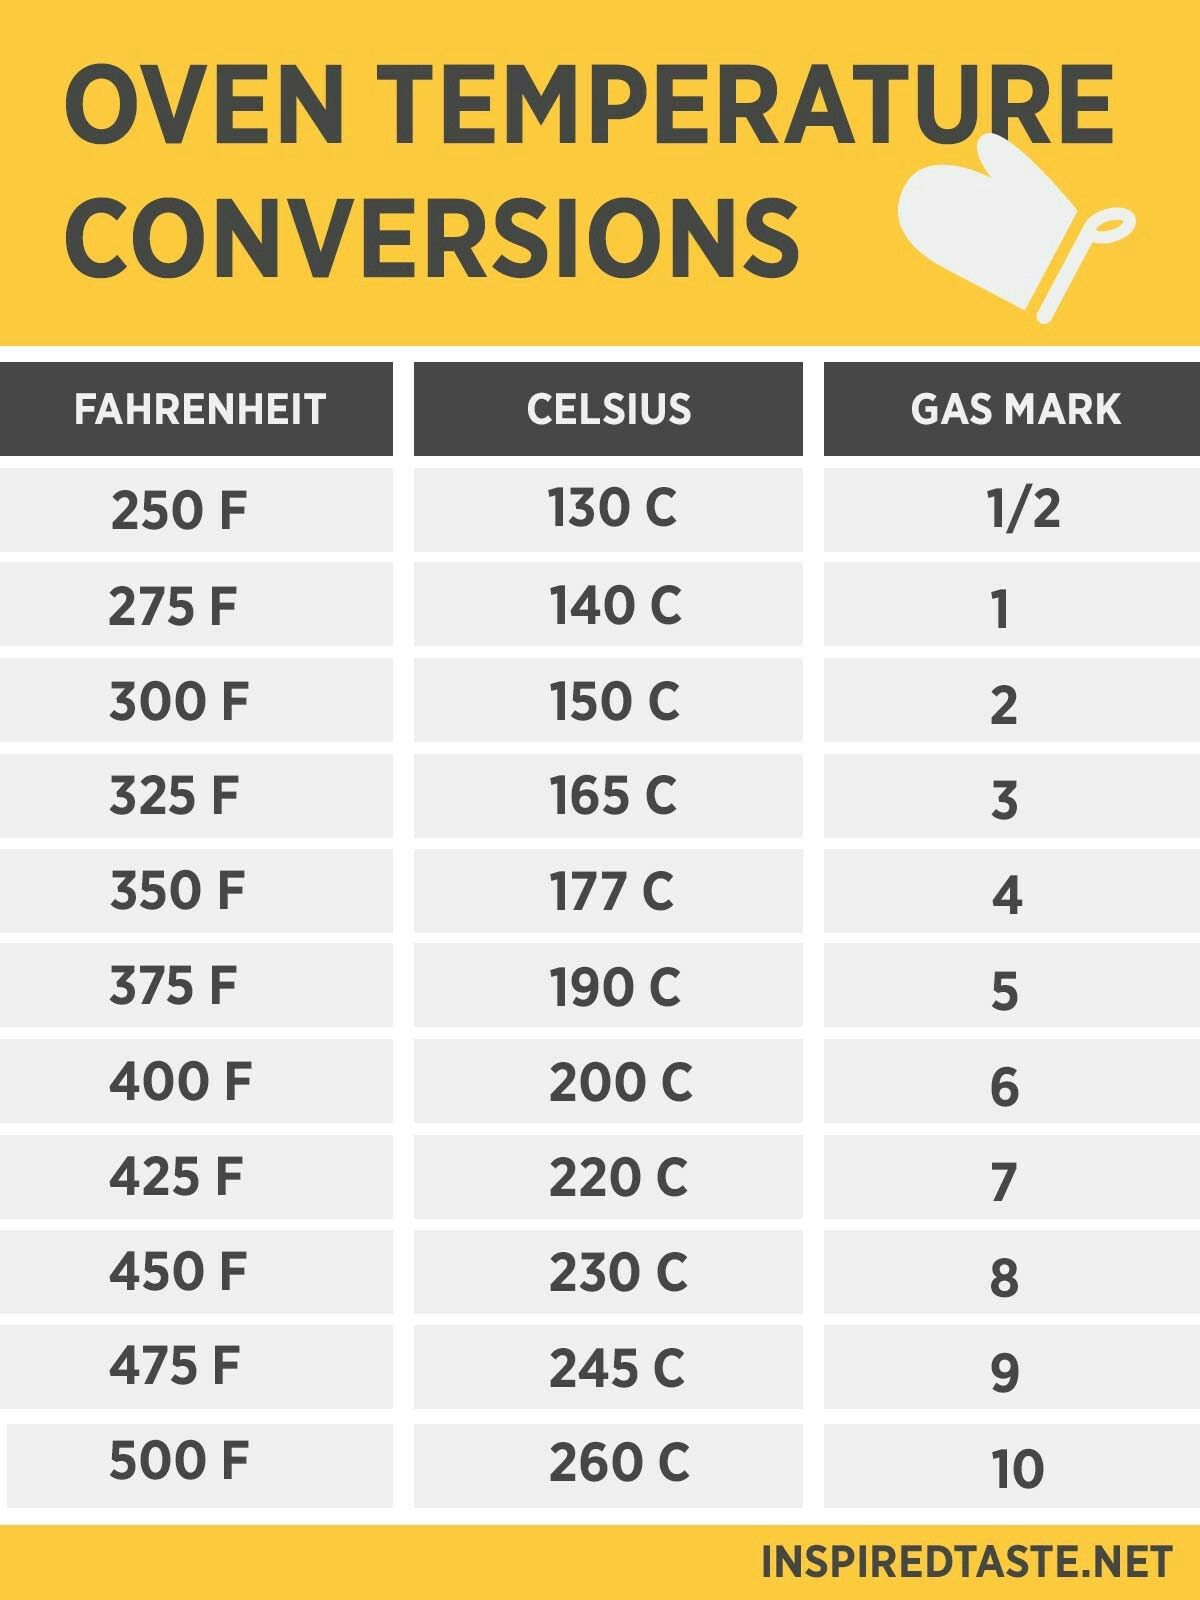 Oven temperature conversion chart fahrenheit to celsius to gas oven temperature conversion chart fahrenheit to celsius to gas mark geenschuldenfo Images